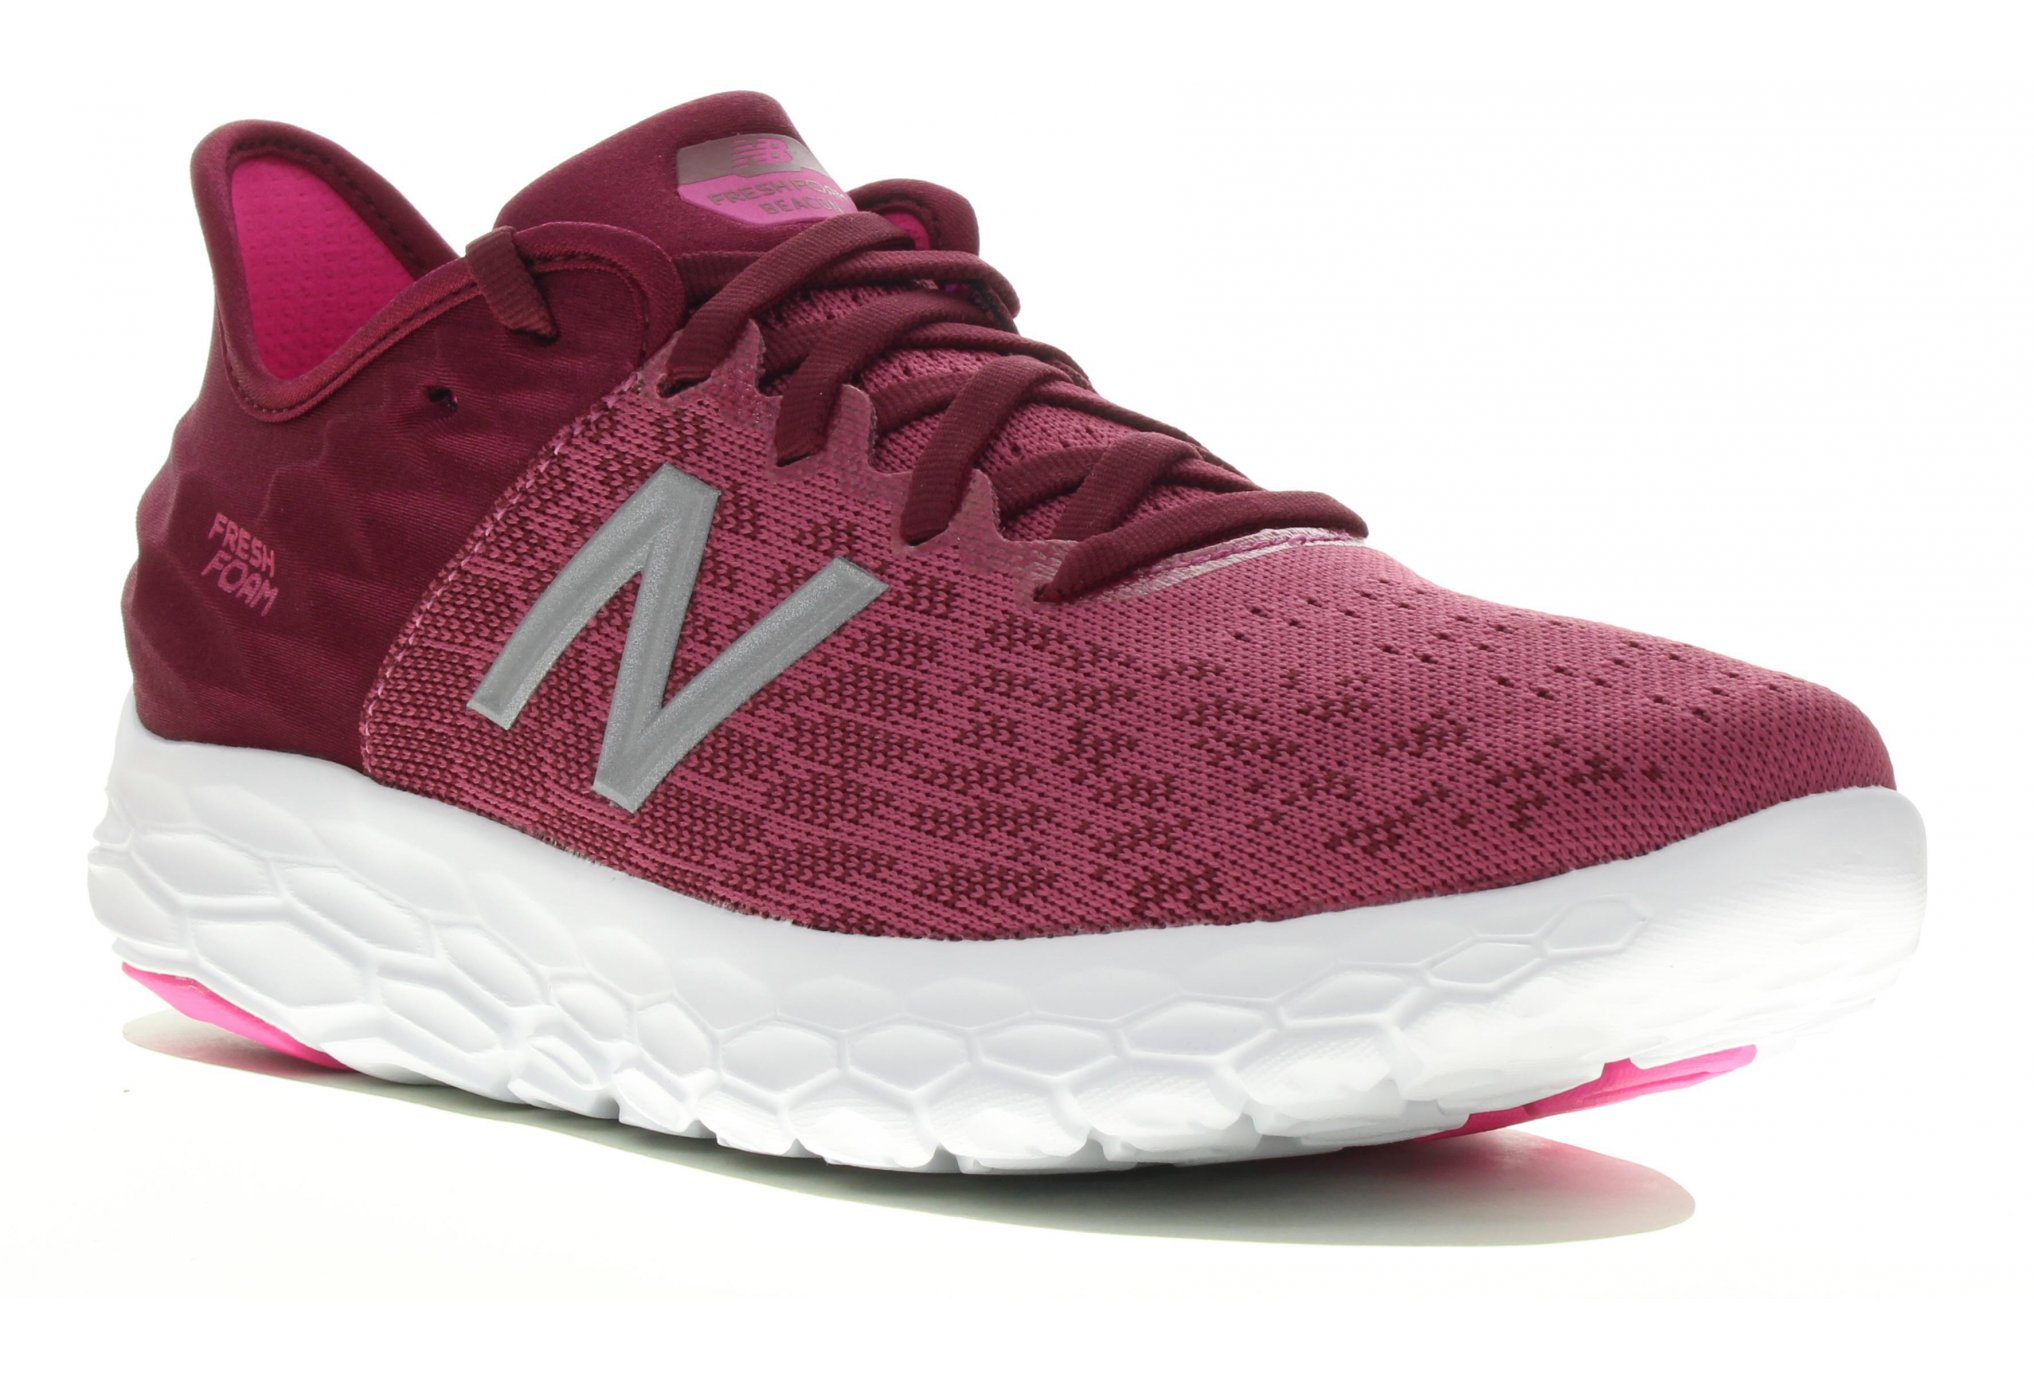 New Balance Fresh Foam Beacon V2 Chaussures running femme